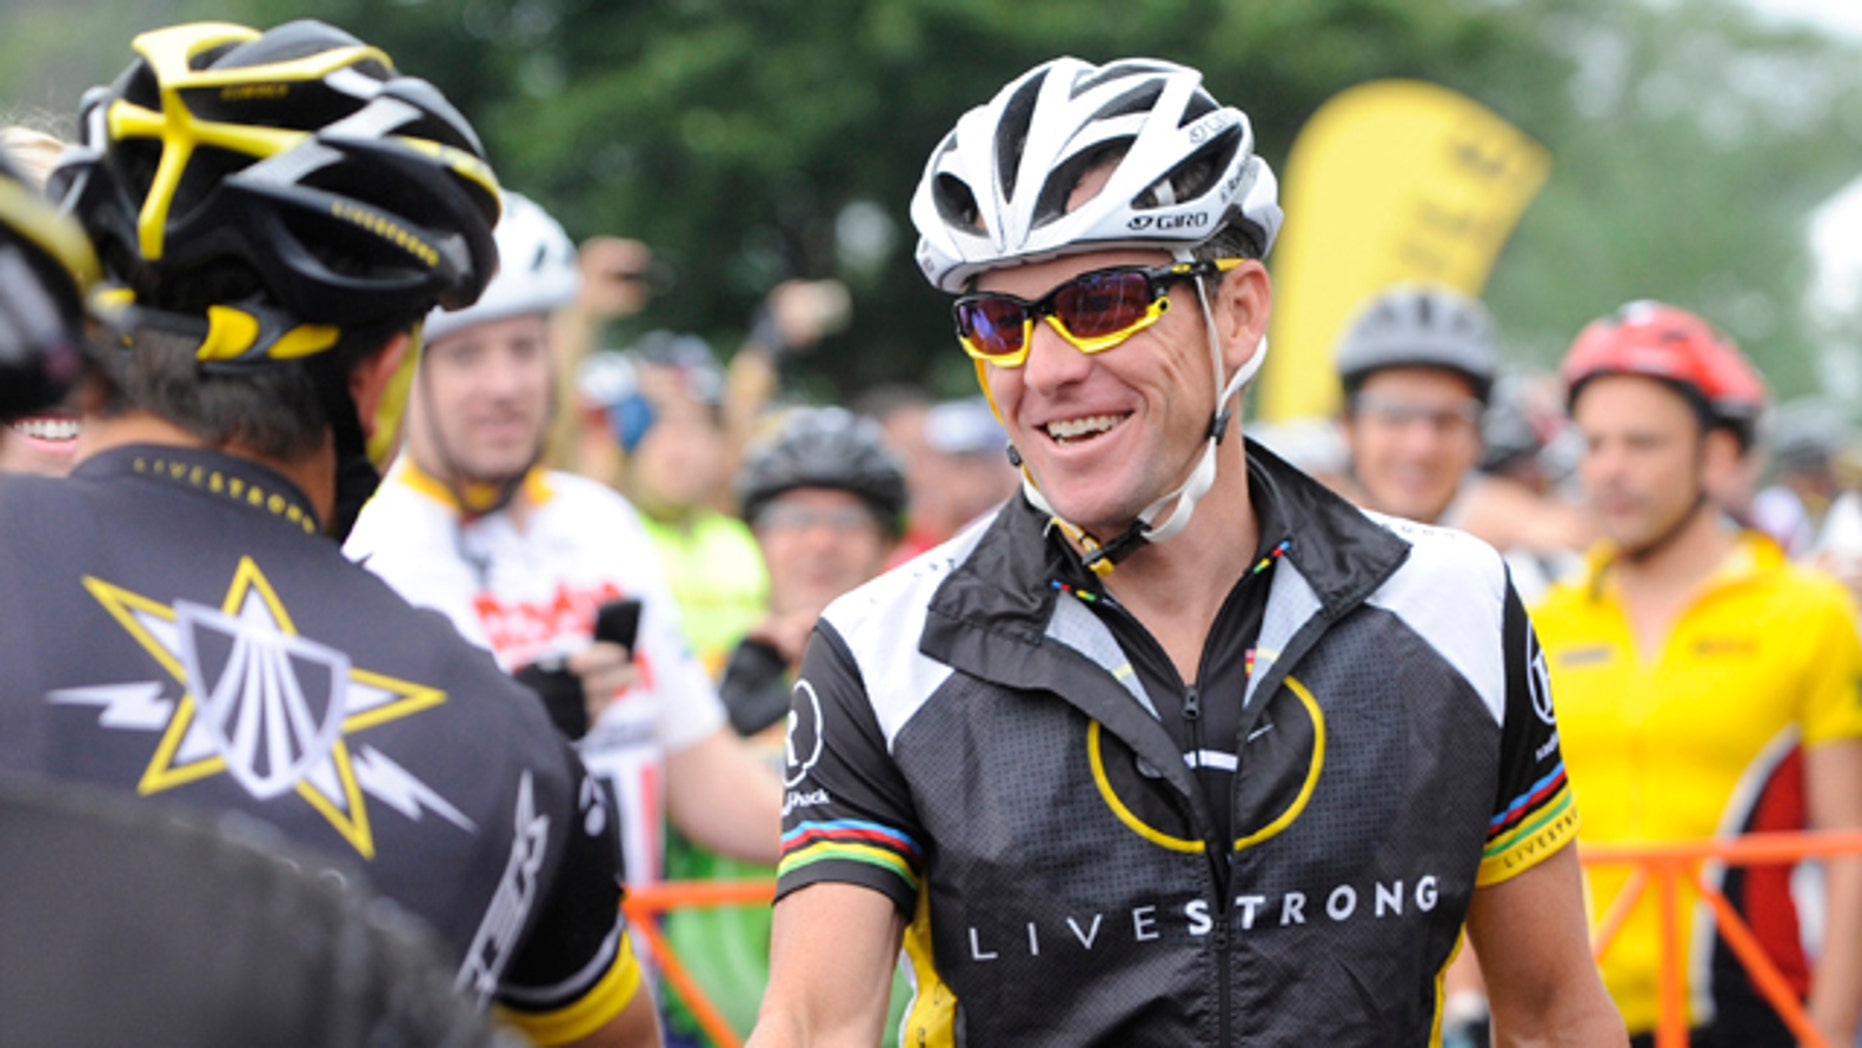 Aug. 22, 2010: This file photo shows Lance Armstrong, center, greeting fellow riders prior to the start of his Livestrong Challenge 10K ride for cancer in Blue Bell, Pa.